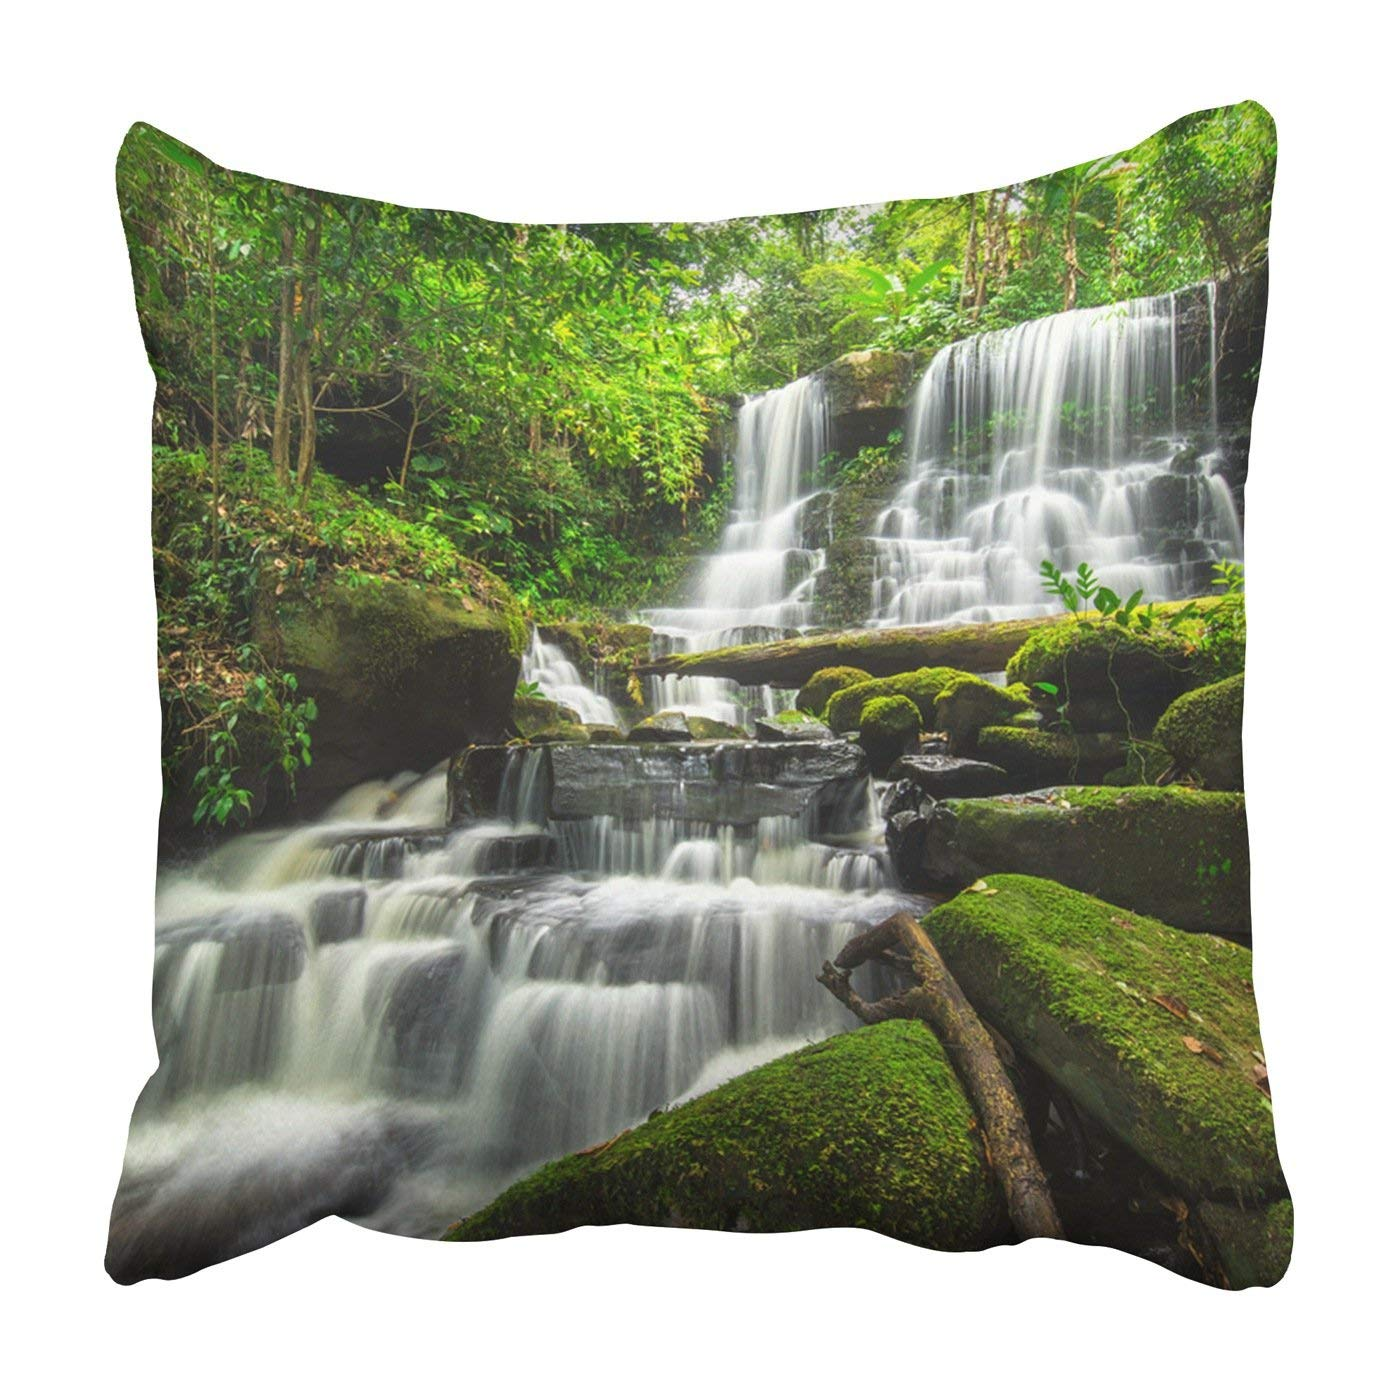 WOPOP beautiful waterfall in green forest Pillowcase Throw Pillow Cover Case 20x20 inches